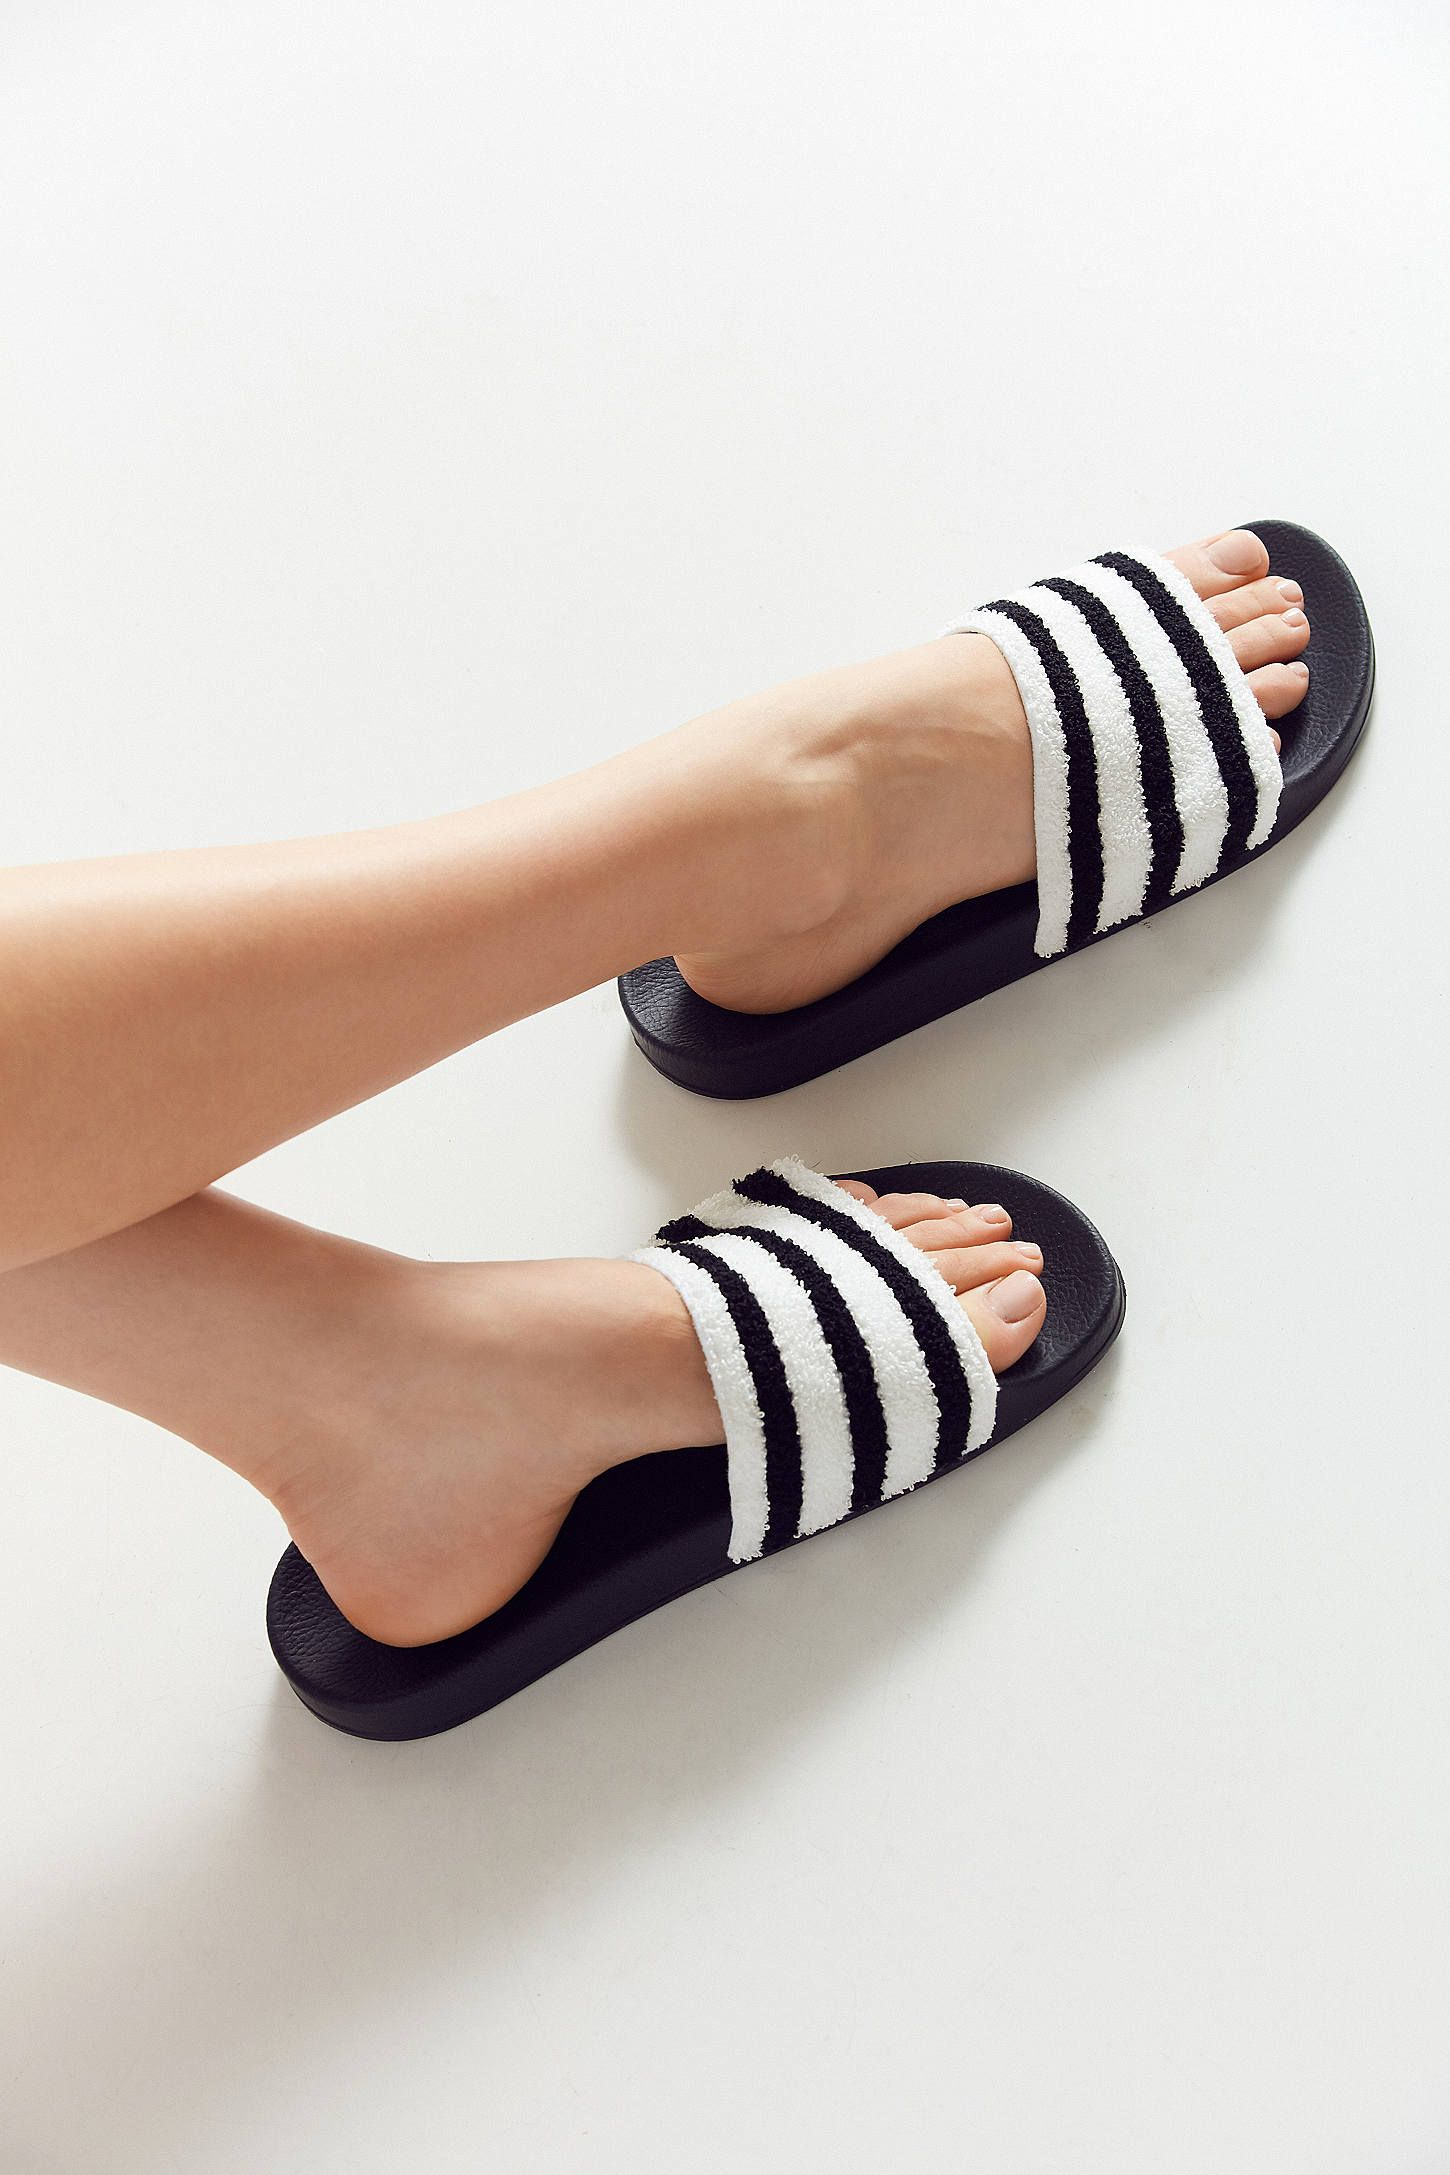 5a157a49fbf886 Shop adidas Originals Adilette Slide at Urban Outfitters today. We carry  all the latest styles